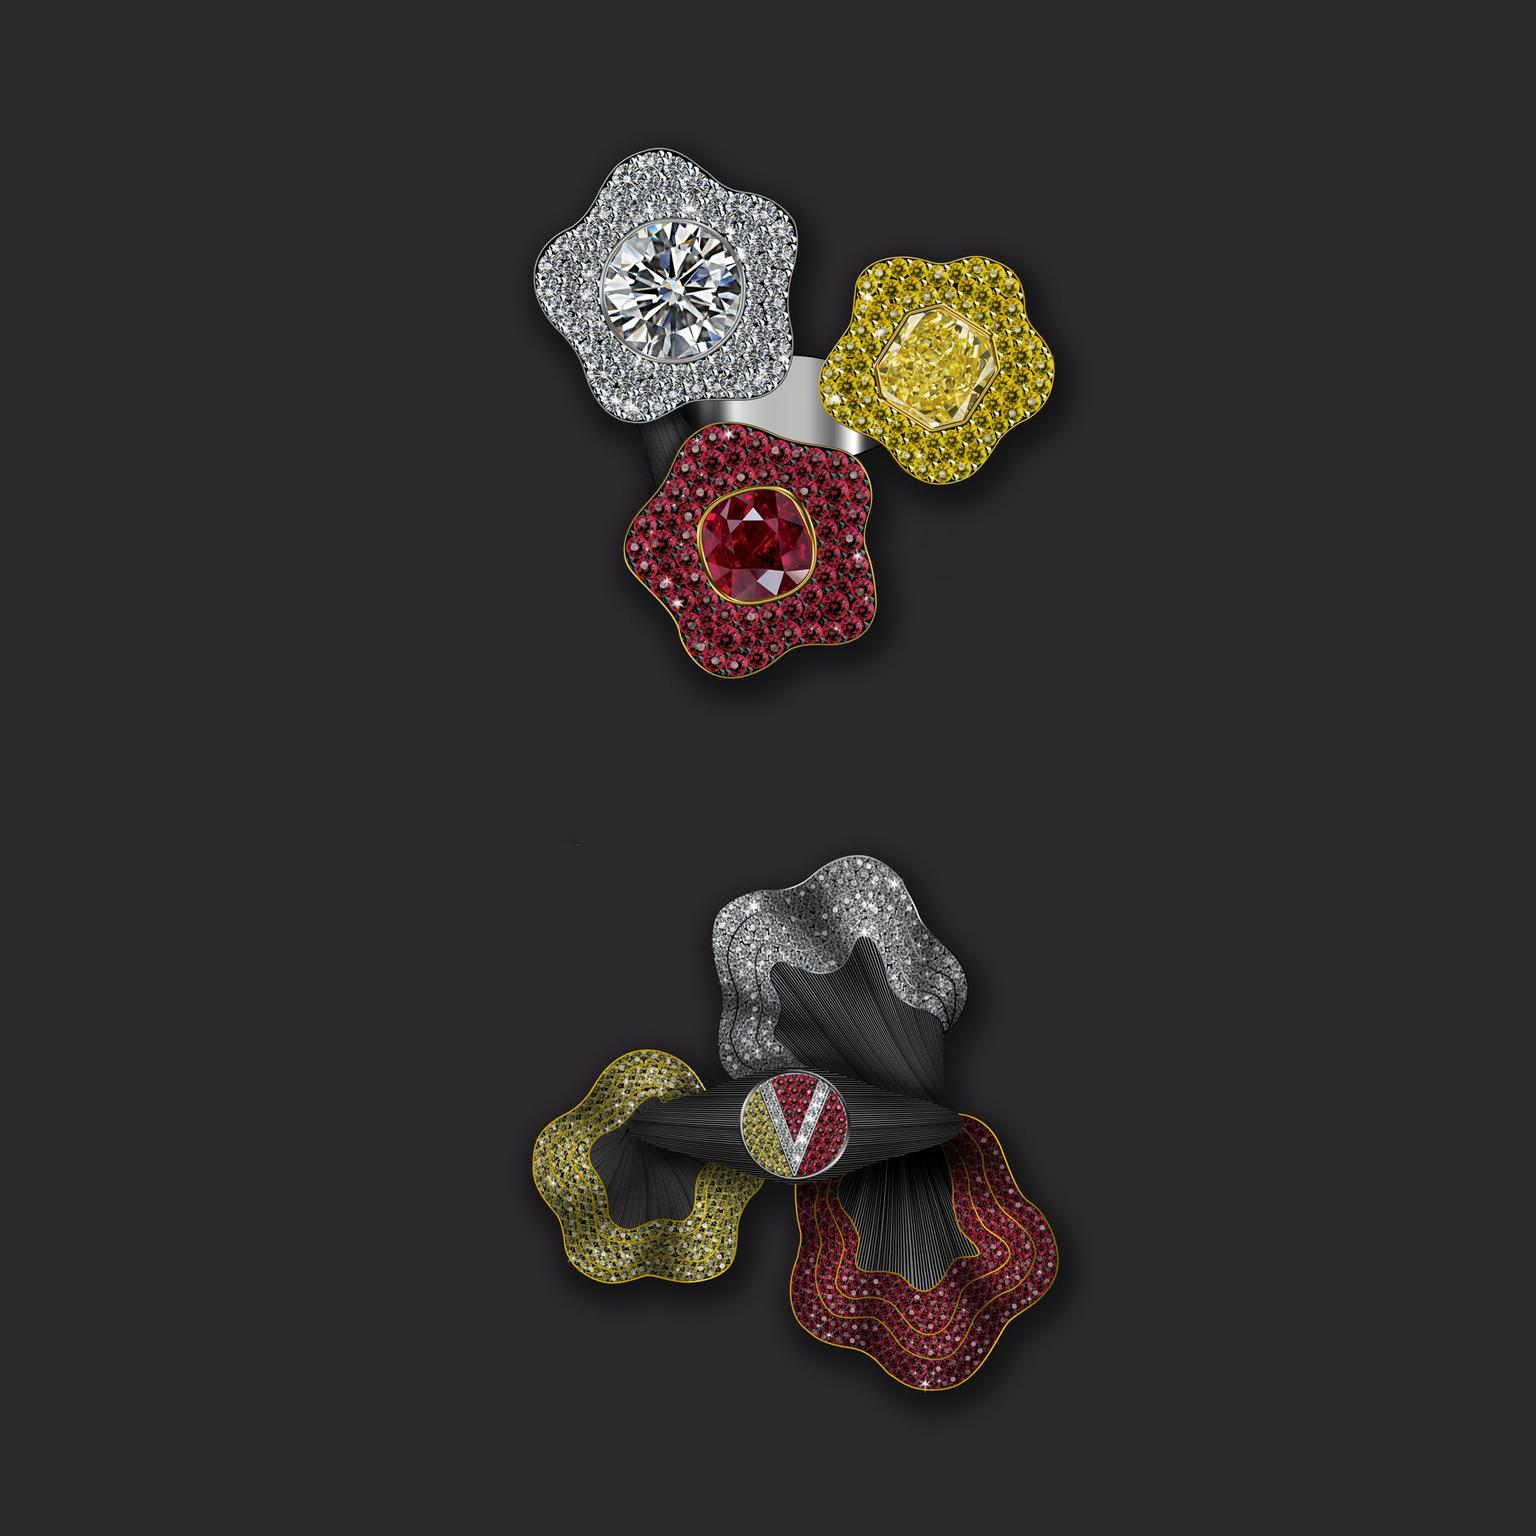 Maxim V Vivid Treasures ruby, white and yellow diamond ring